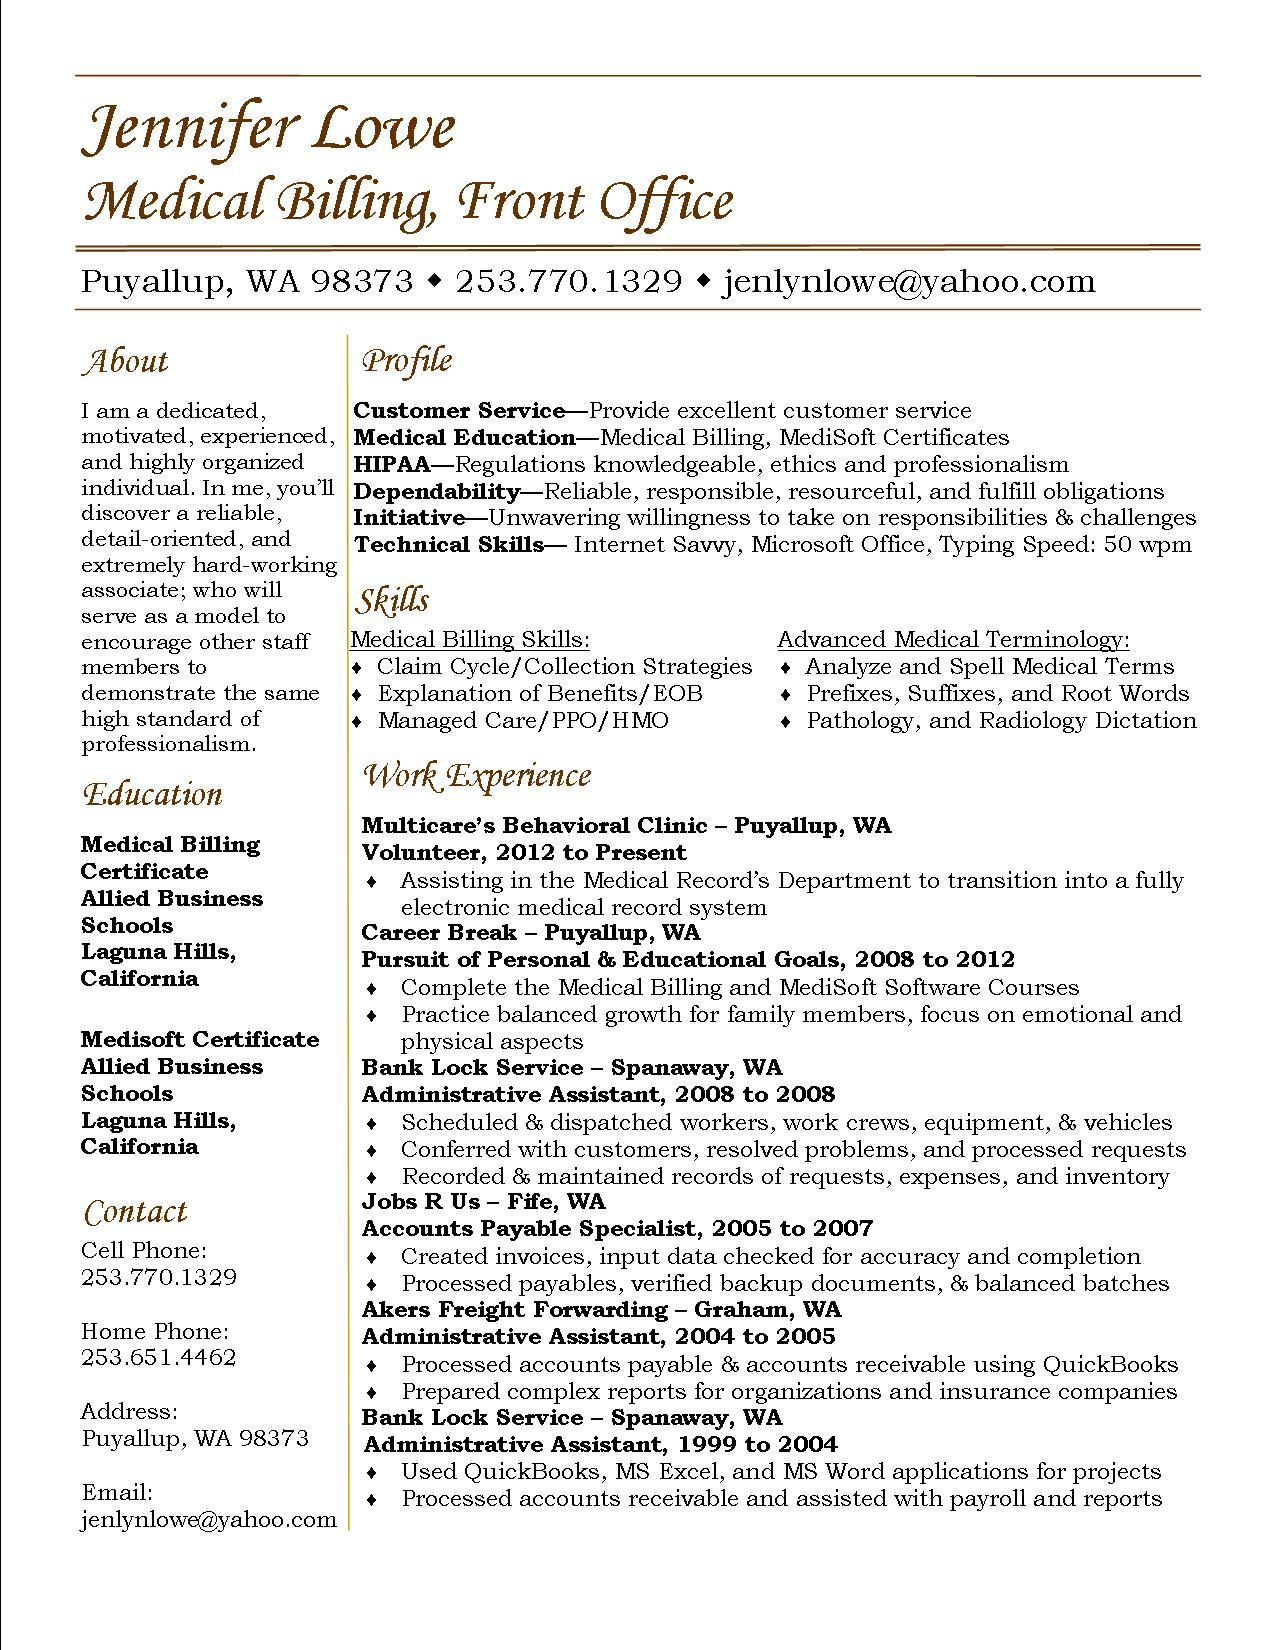 Jennifer Lowe Resume Medical Billing Career